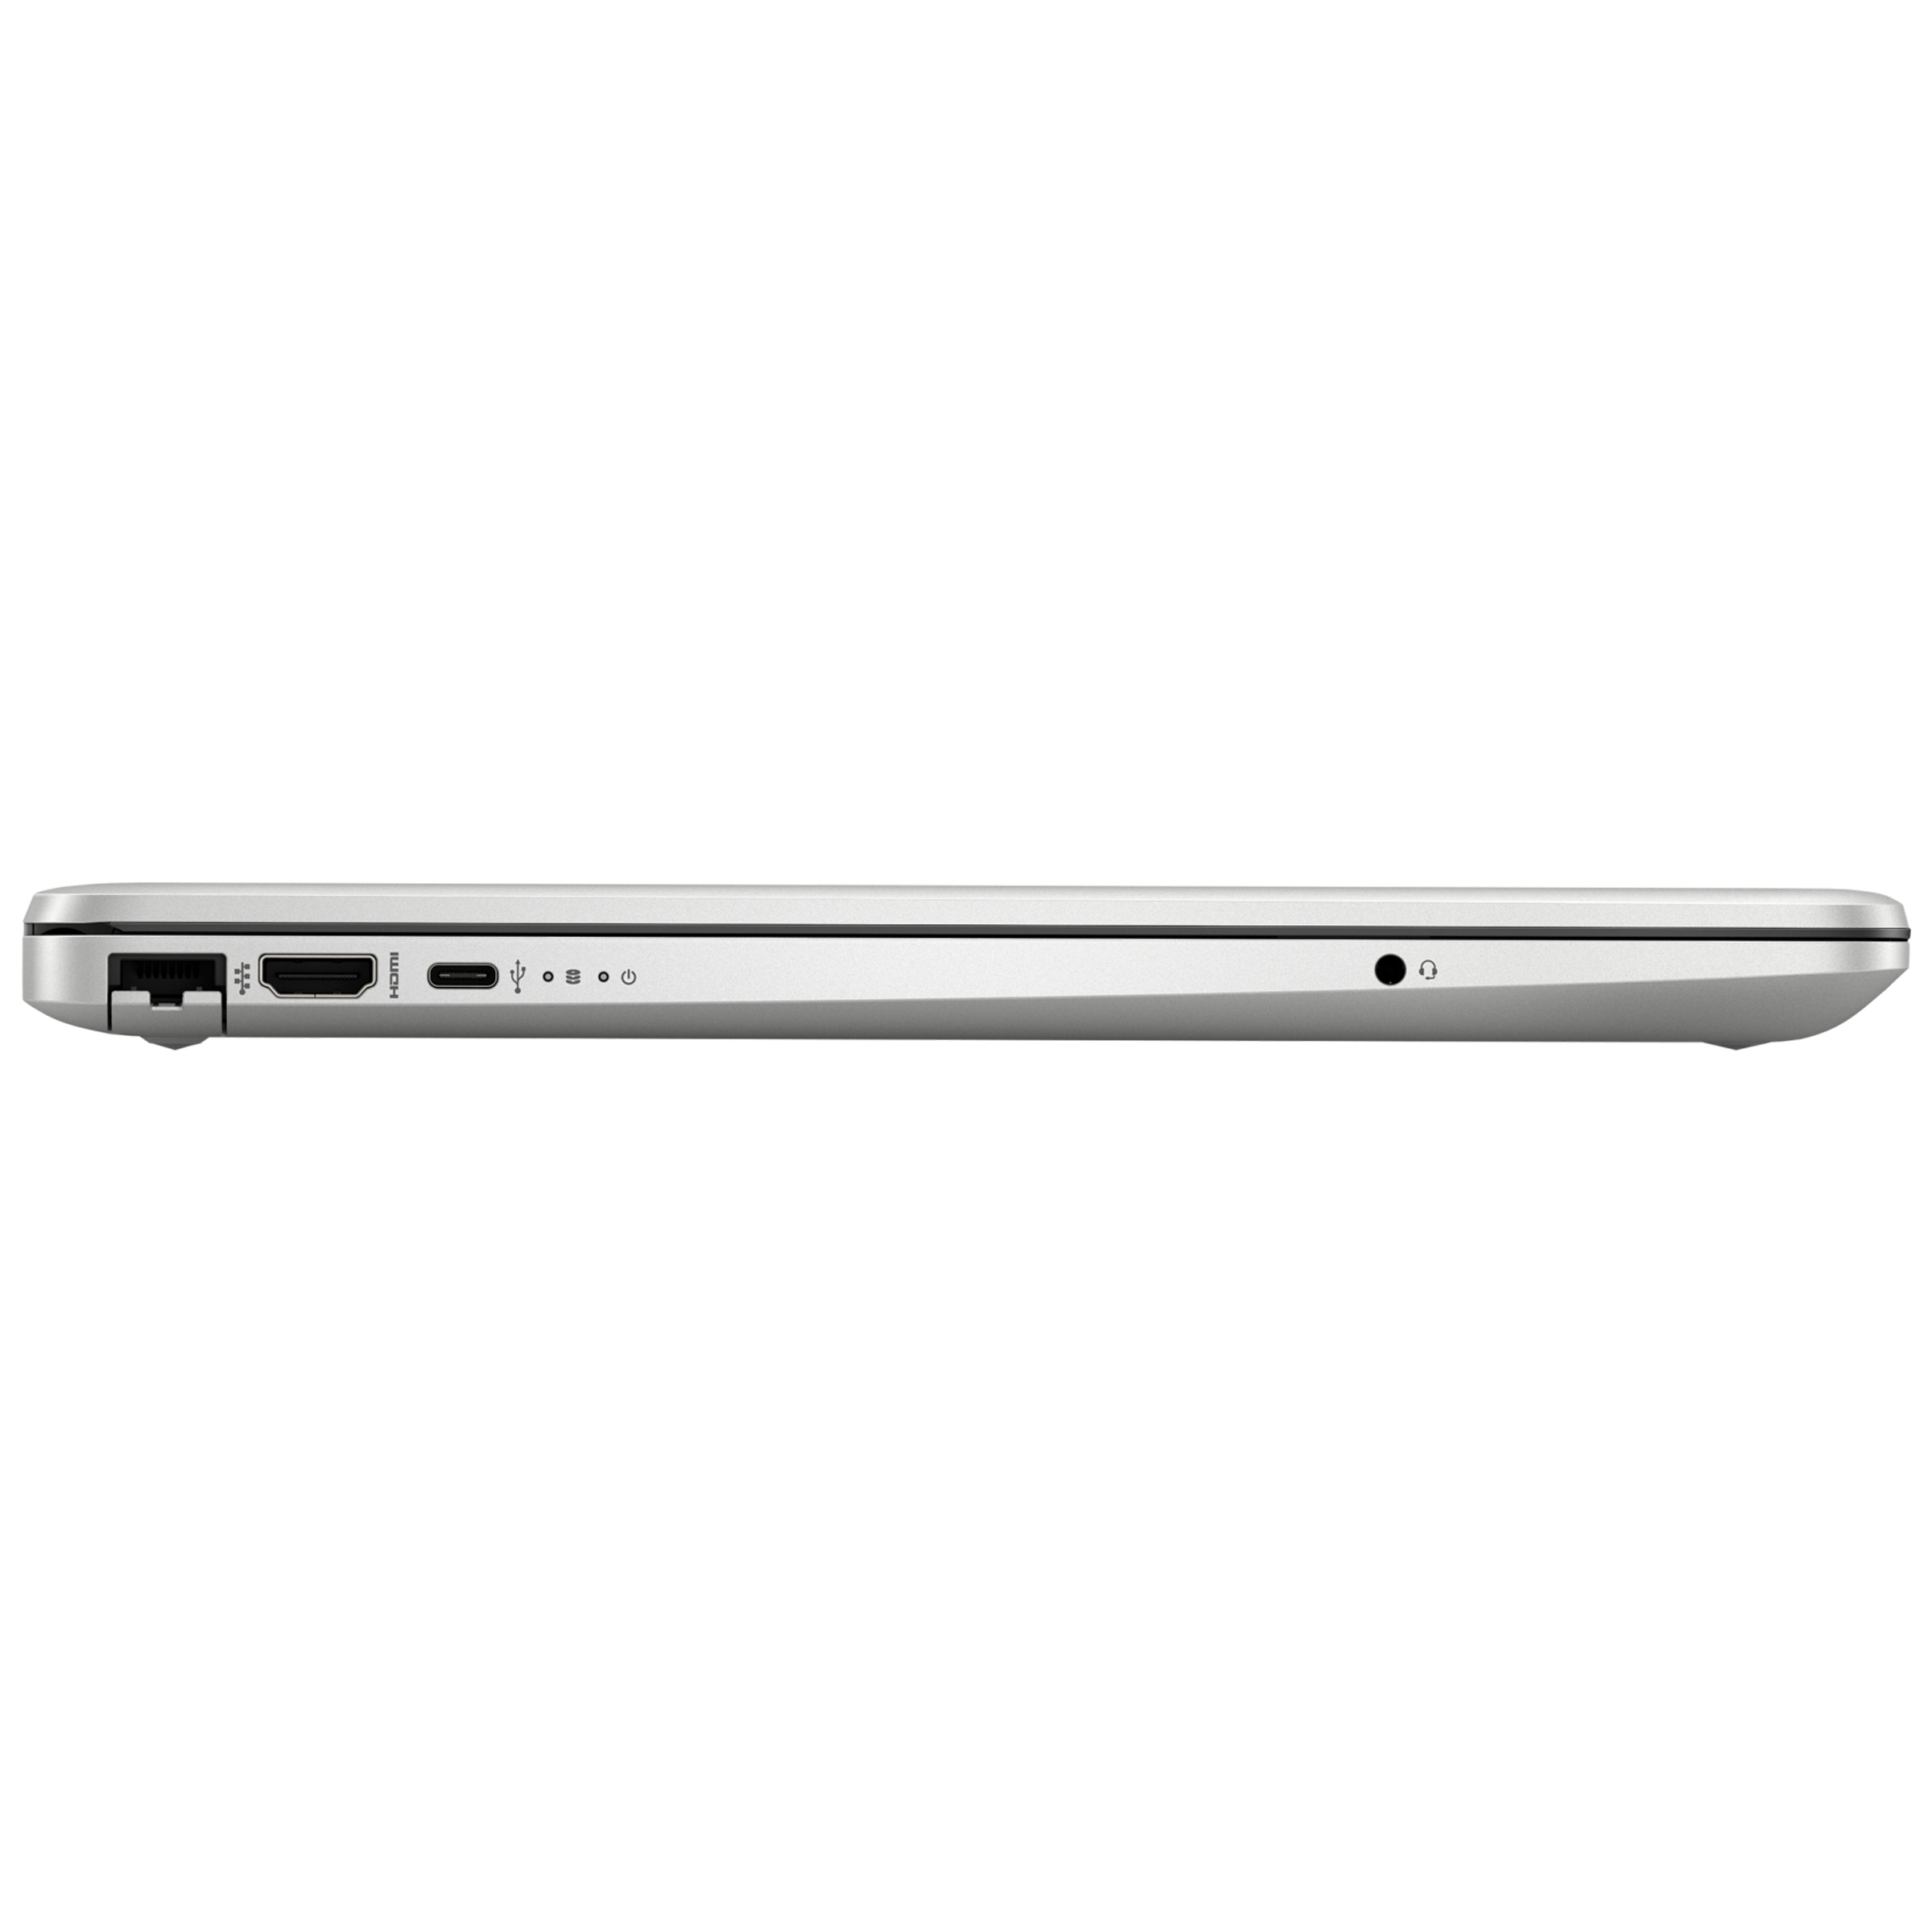 HP 15s-dr3001TU (34W43PA#ACJ) Core i3 11th Gen Windows 10 Home Thin and Light Laptop (8GB RAM, 1TB HDD, Intel UHD Graphics, 39.6cm, Natural Silver) 6